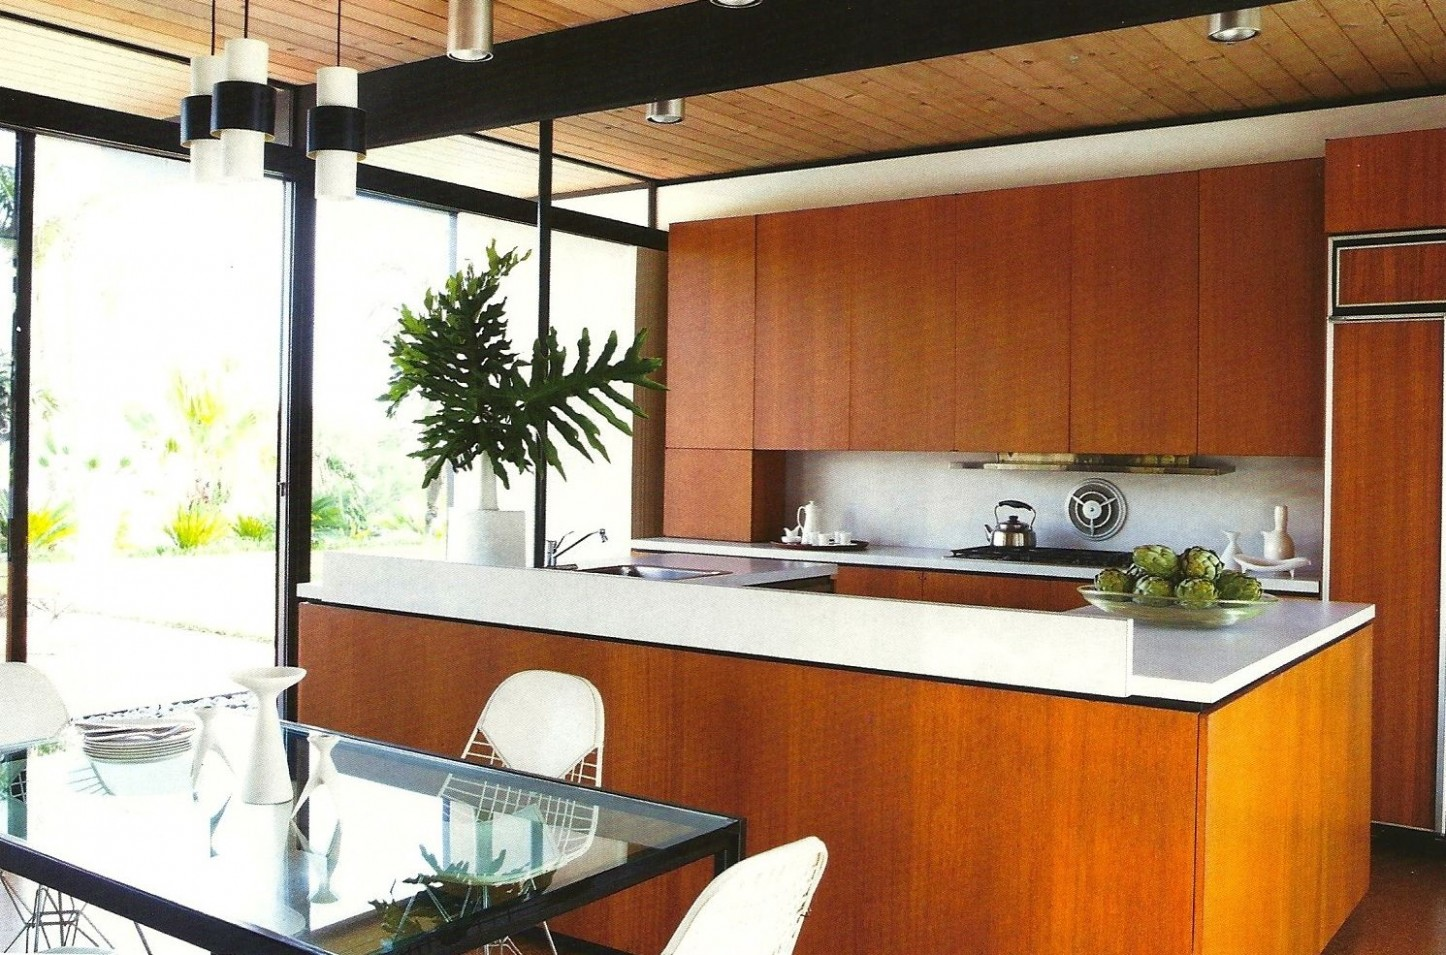 Pin by Rachel Valencia on Midcentury Modern Kitchen  Mid century  - Dark Vineer Mid Century Kitchen Cabinets